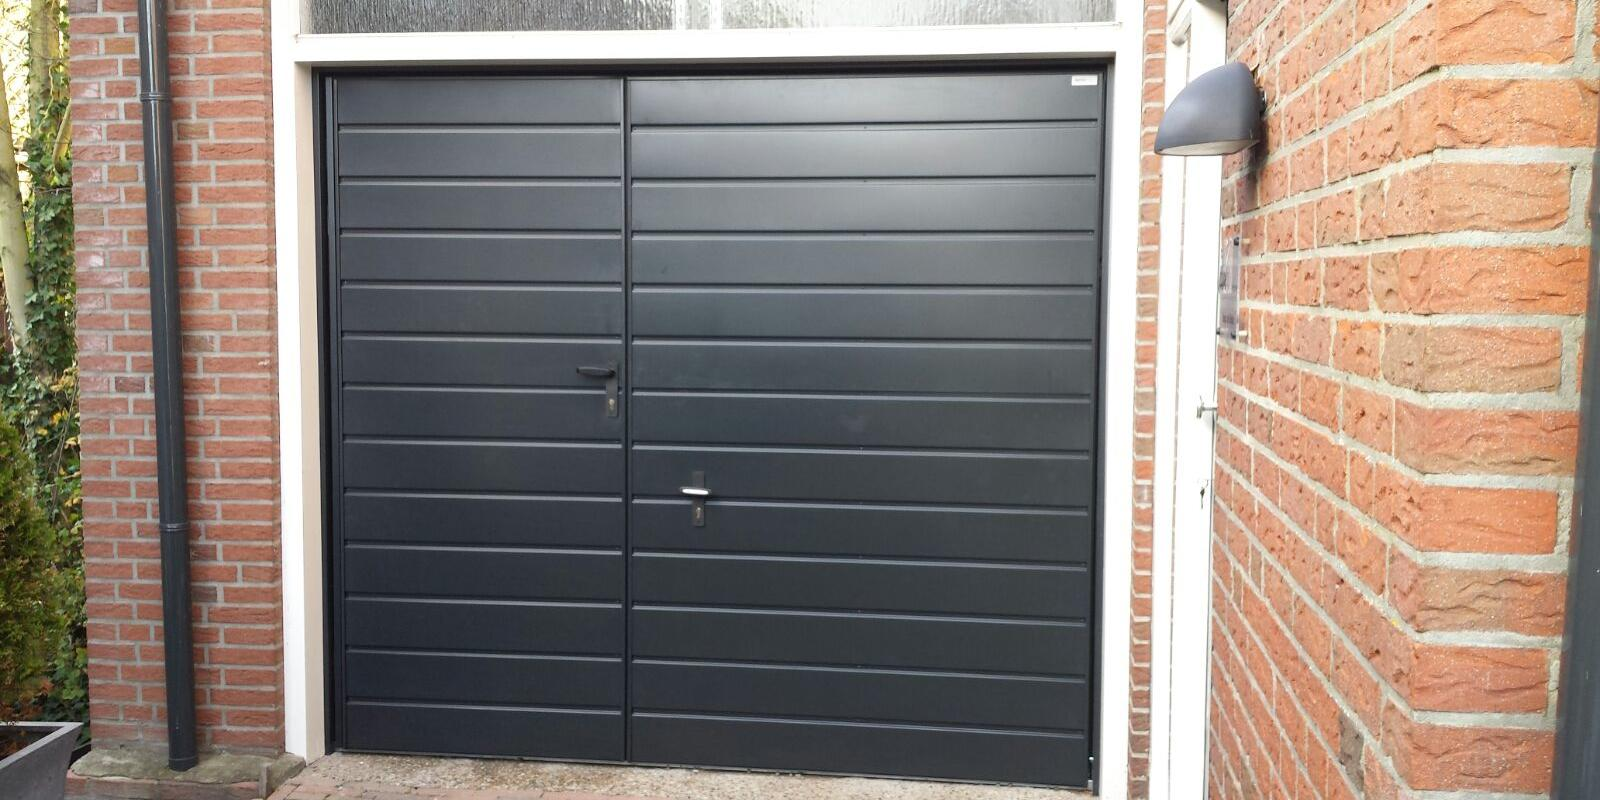 garagedeur loopdeur links